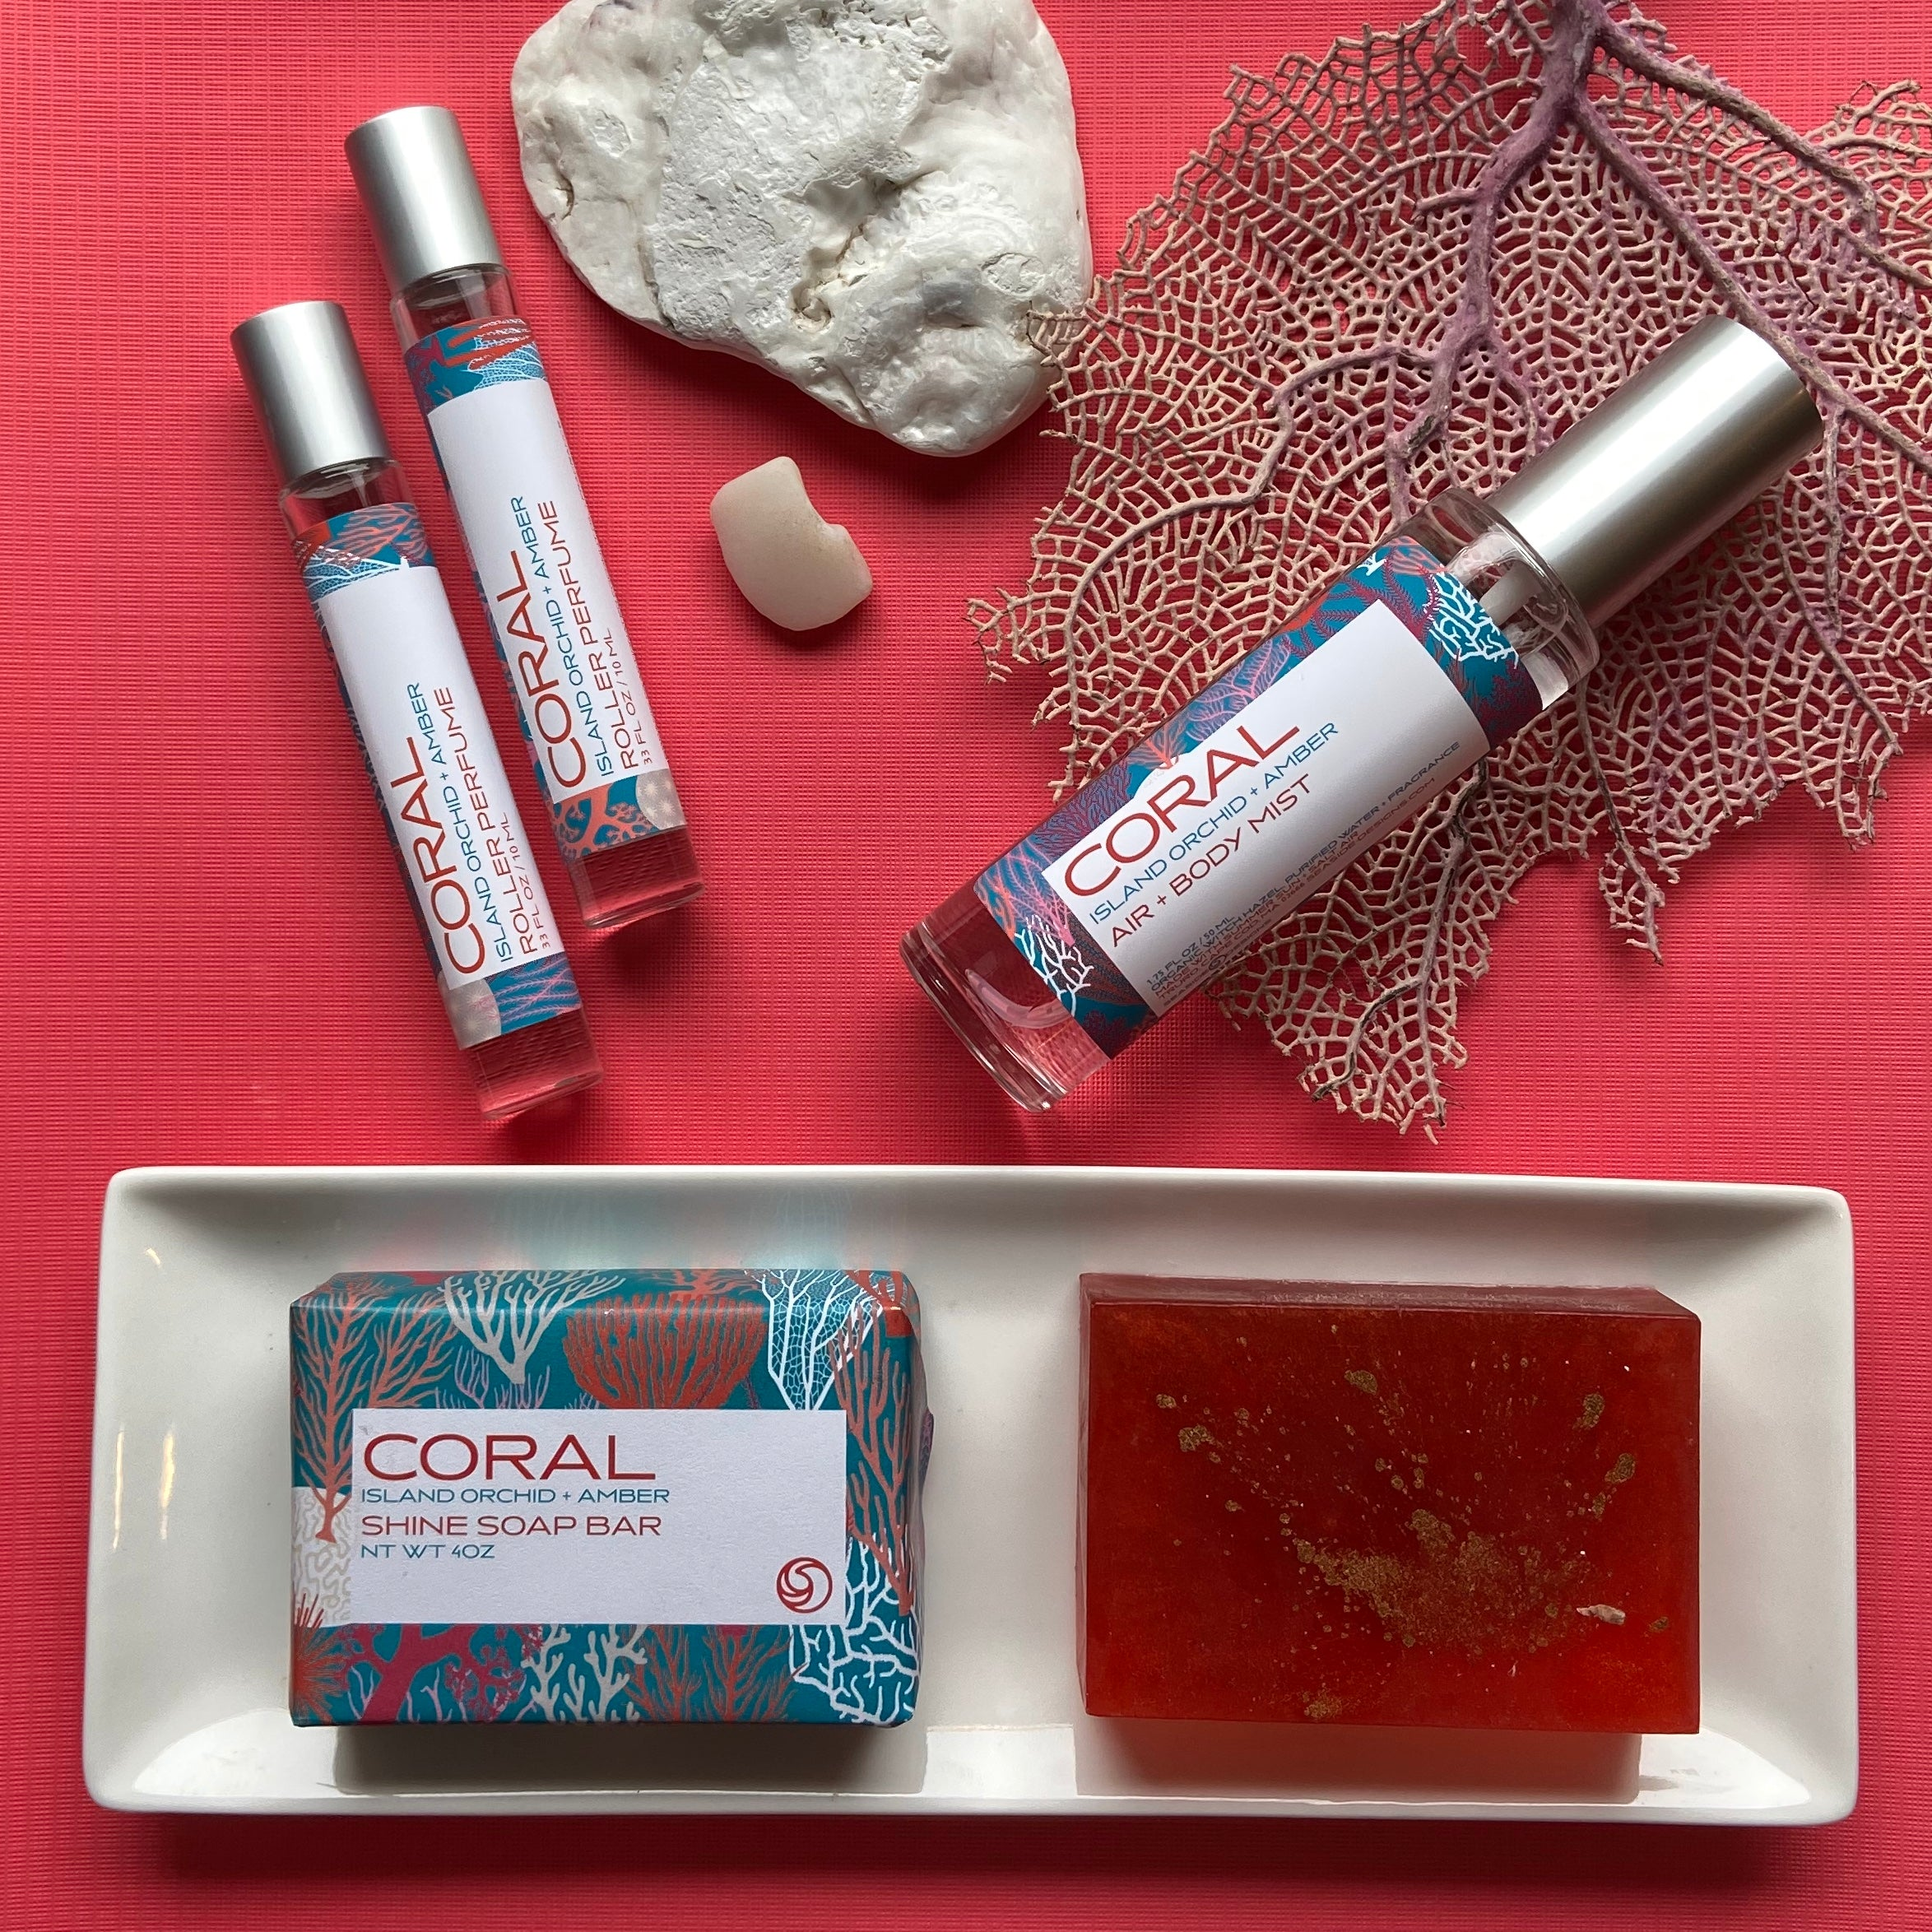 CORAL Shine Bar / Wholesale Pack of 4